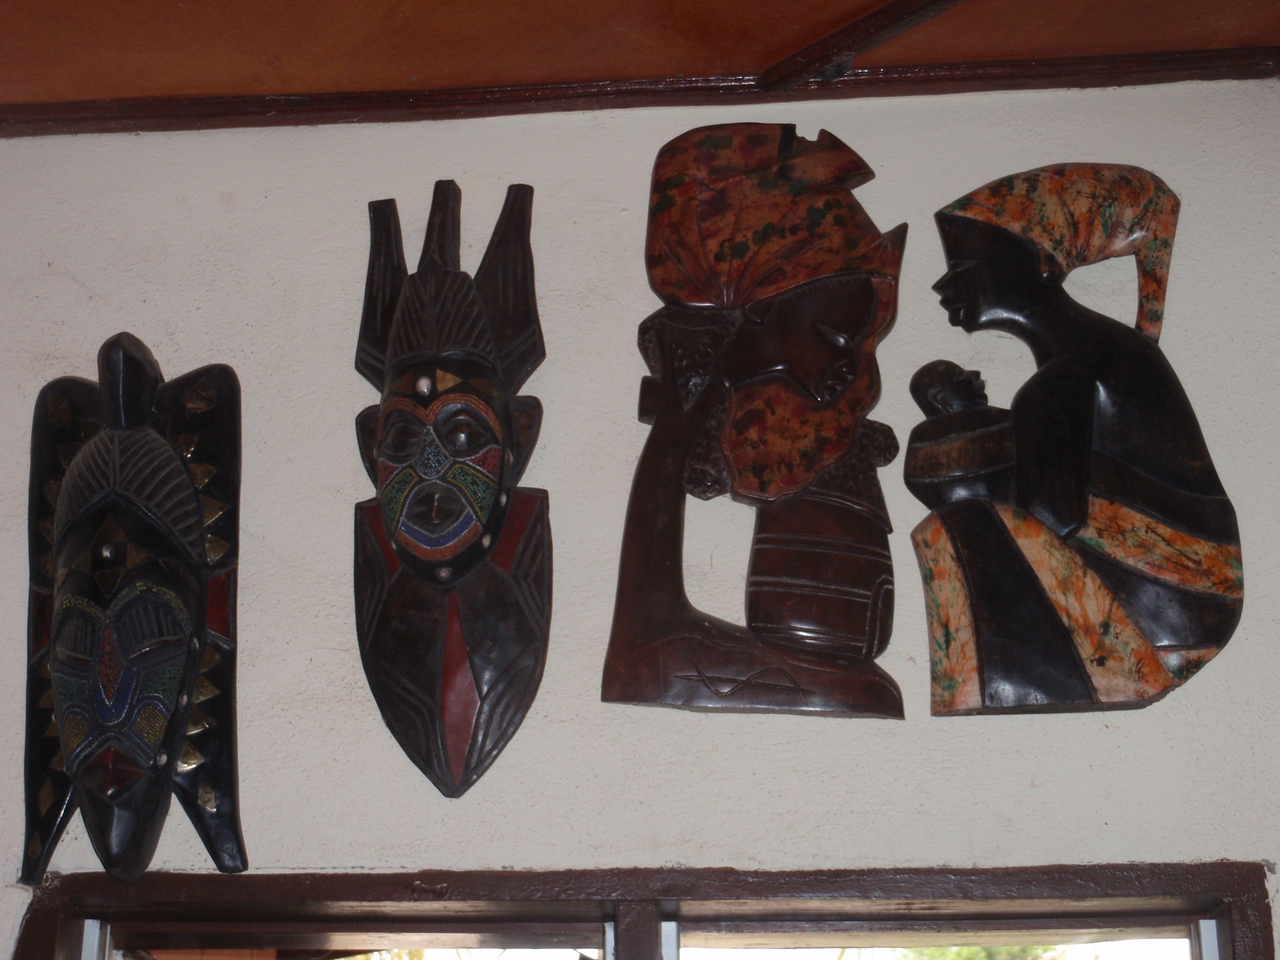 158_Cotonou  The Craft Market  Woodcarvings  Masks